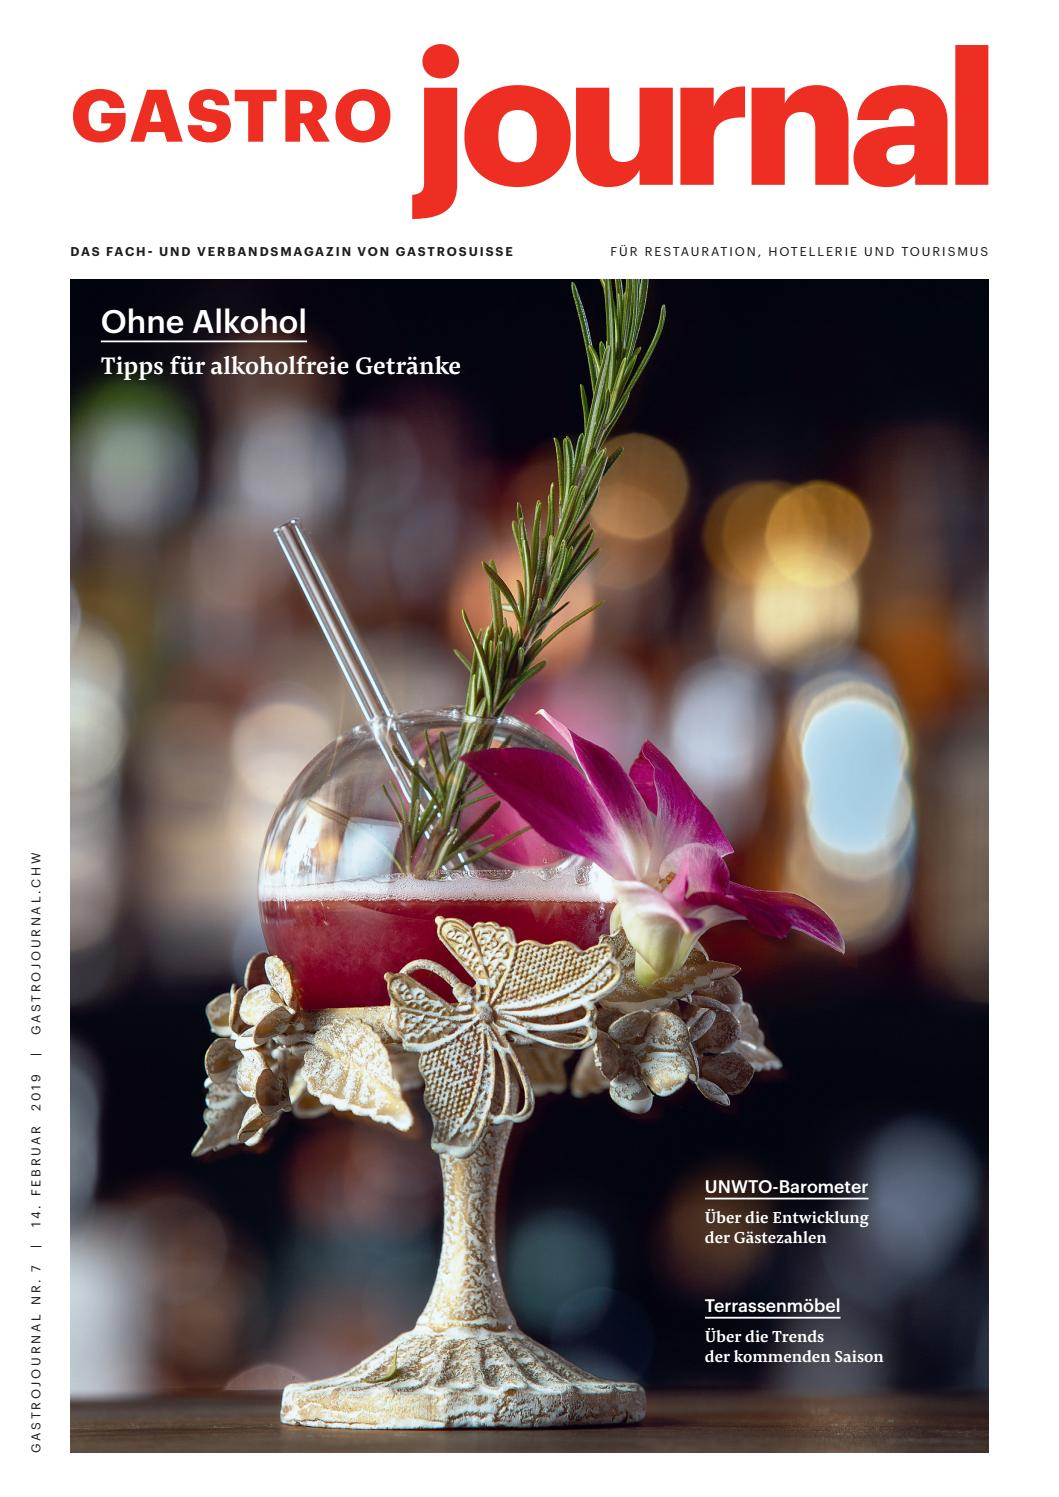 072019 Gastrojournal 072019 Gastrojournal Issuu By By Issuu hsrdQCt